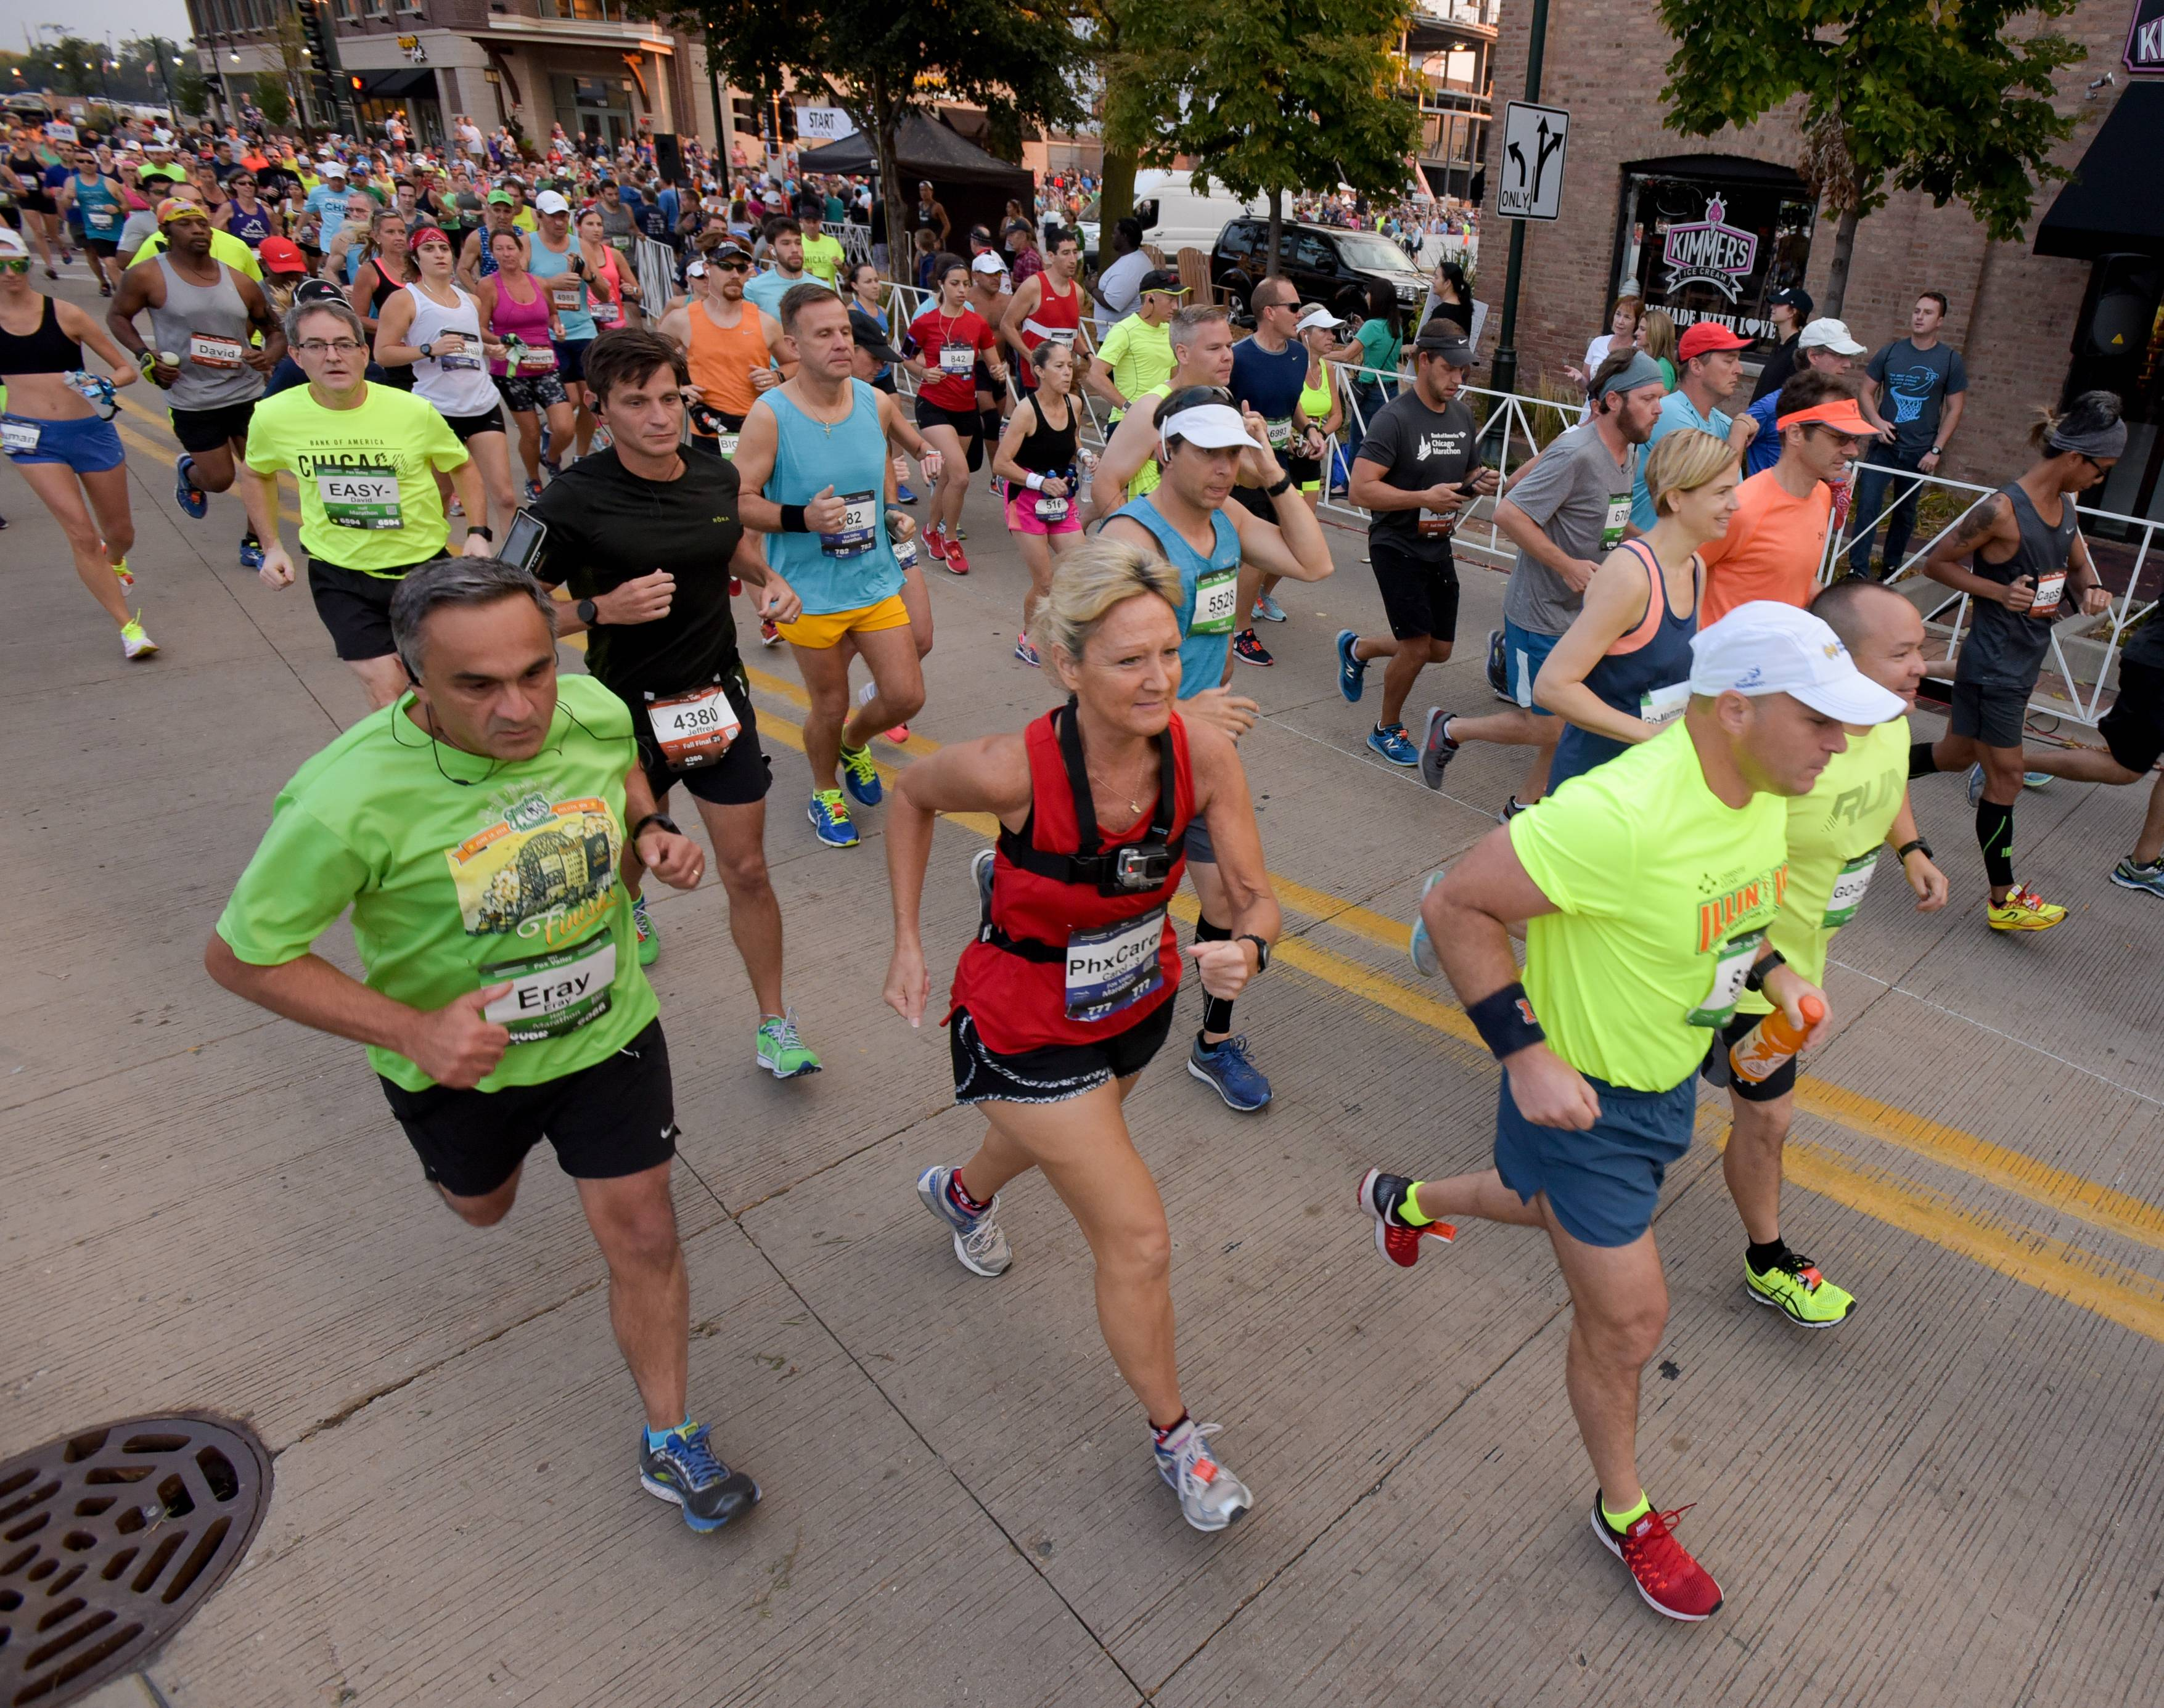 Runners in the eighth annual Fox Valley half marathon, Fall Final 20 and full marathon take off Sunday at the starting line in downtown St. Charles.